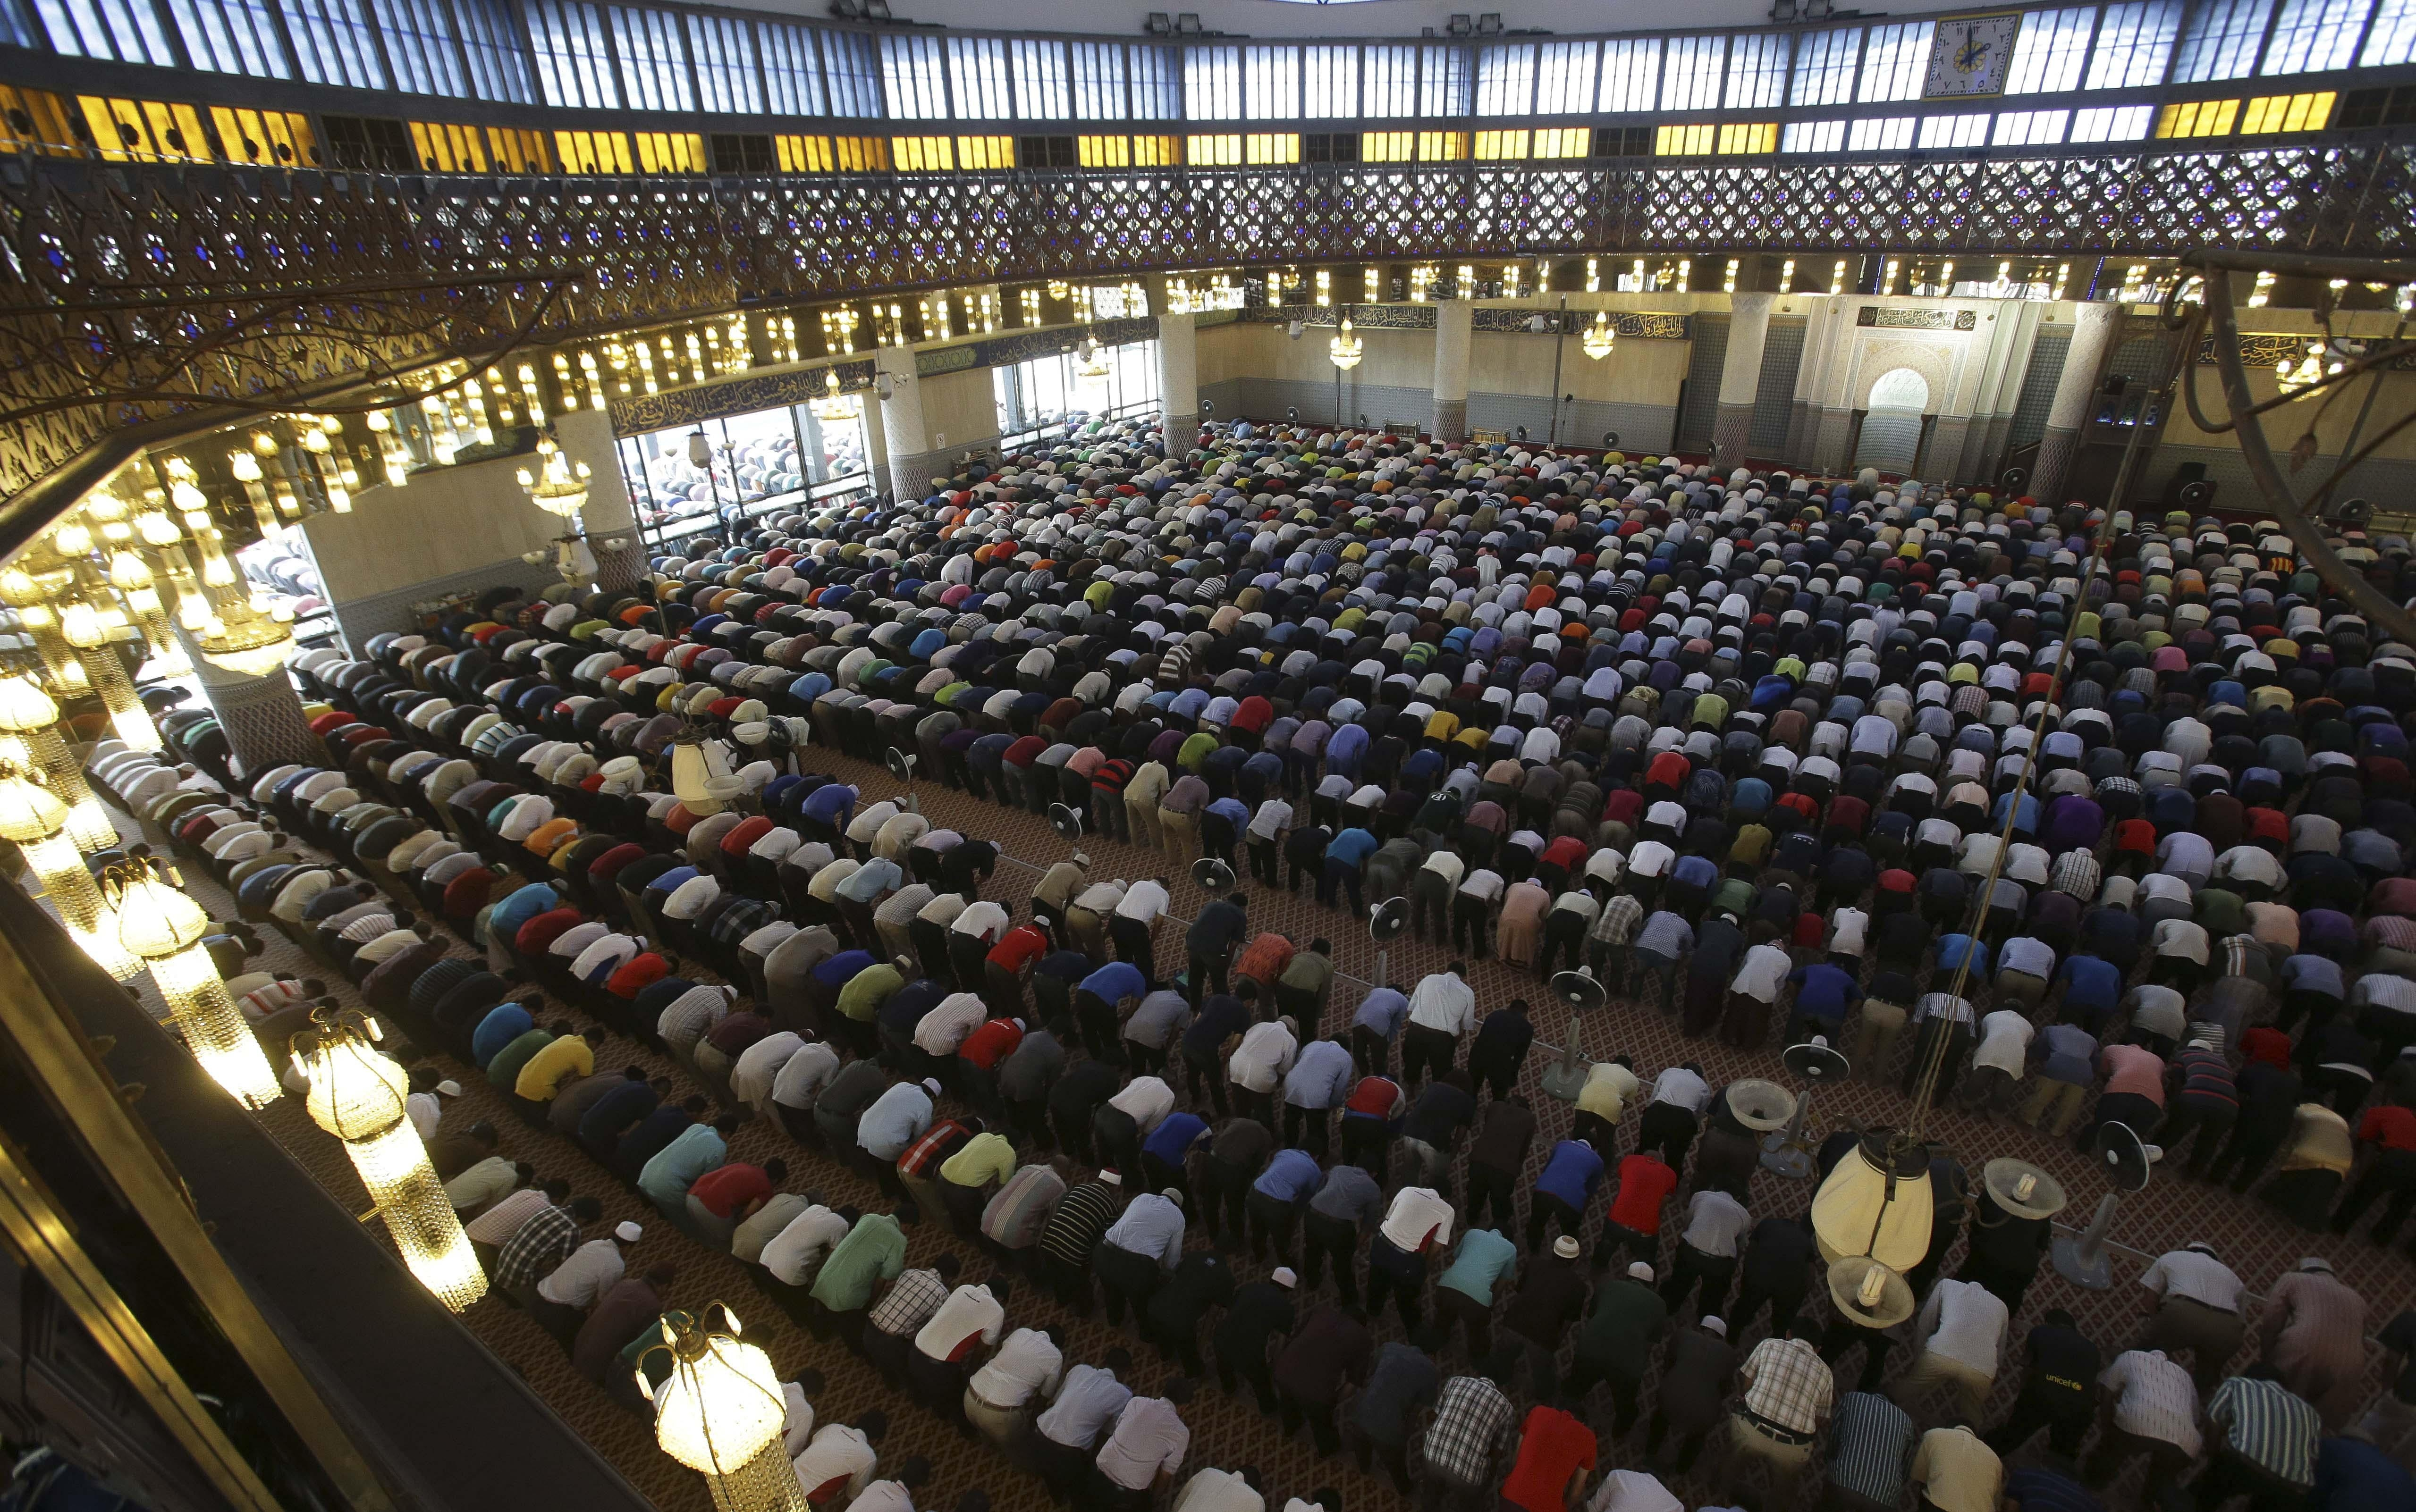 Muslims attend Friday prayers at a mosque in Kuala Lumpur, Malaysia, where they prayed for the passengers and crew of the missing Malaysia Air Flight 370.